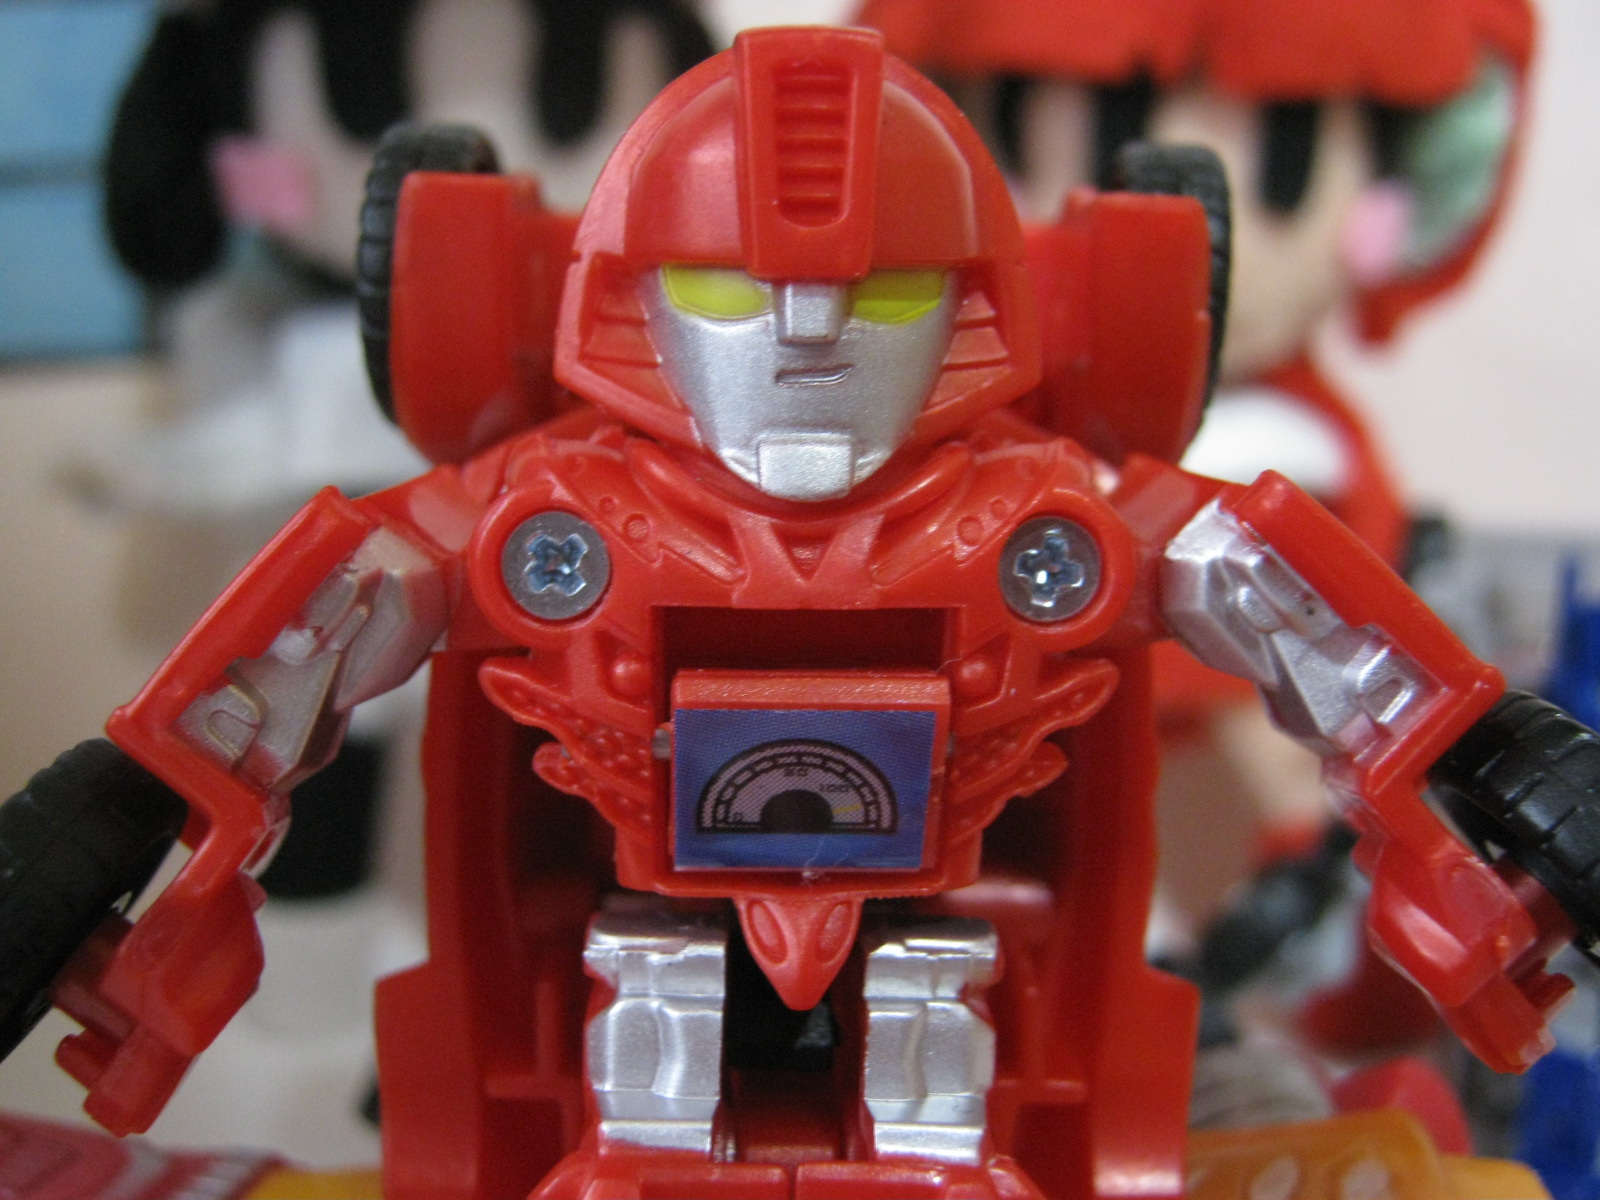 transformers takara tomy toy Be cool japan bot shots red mirage face メーター